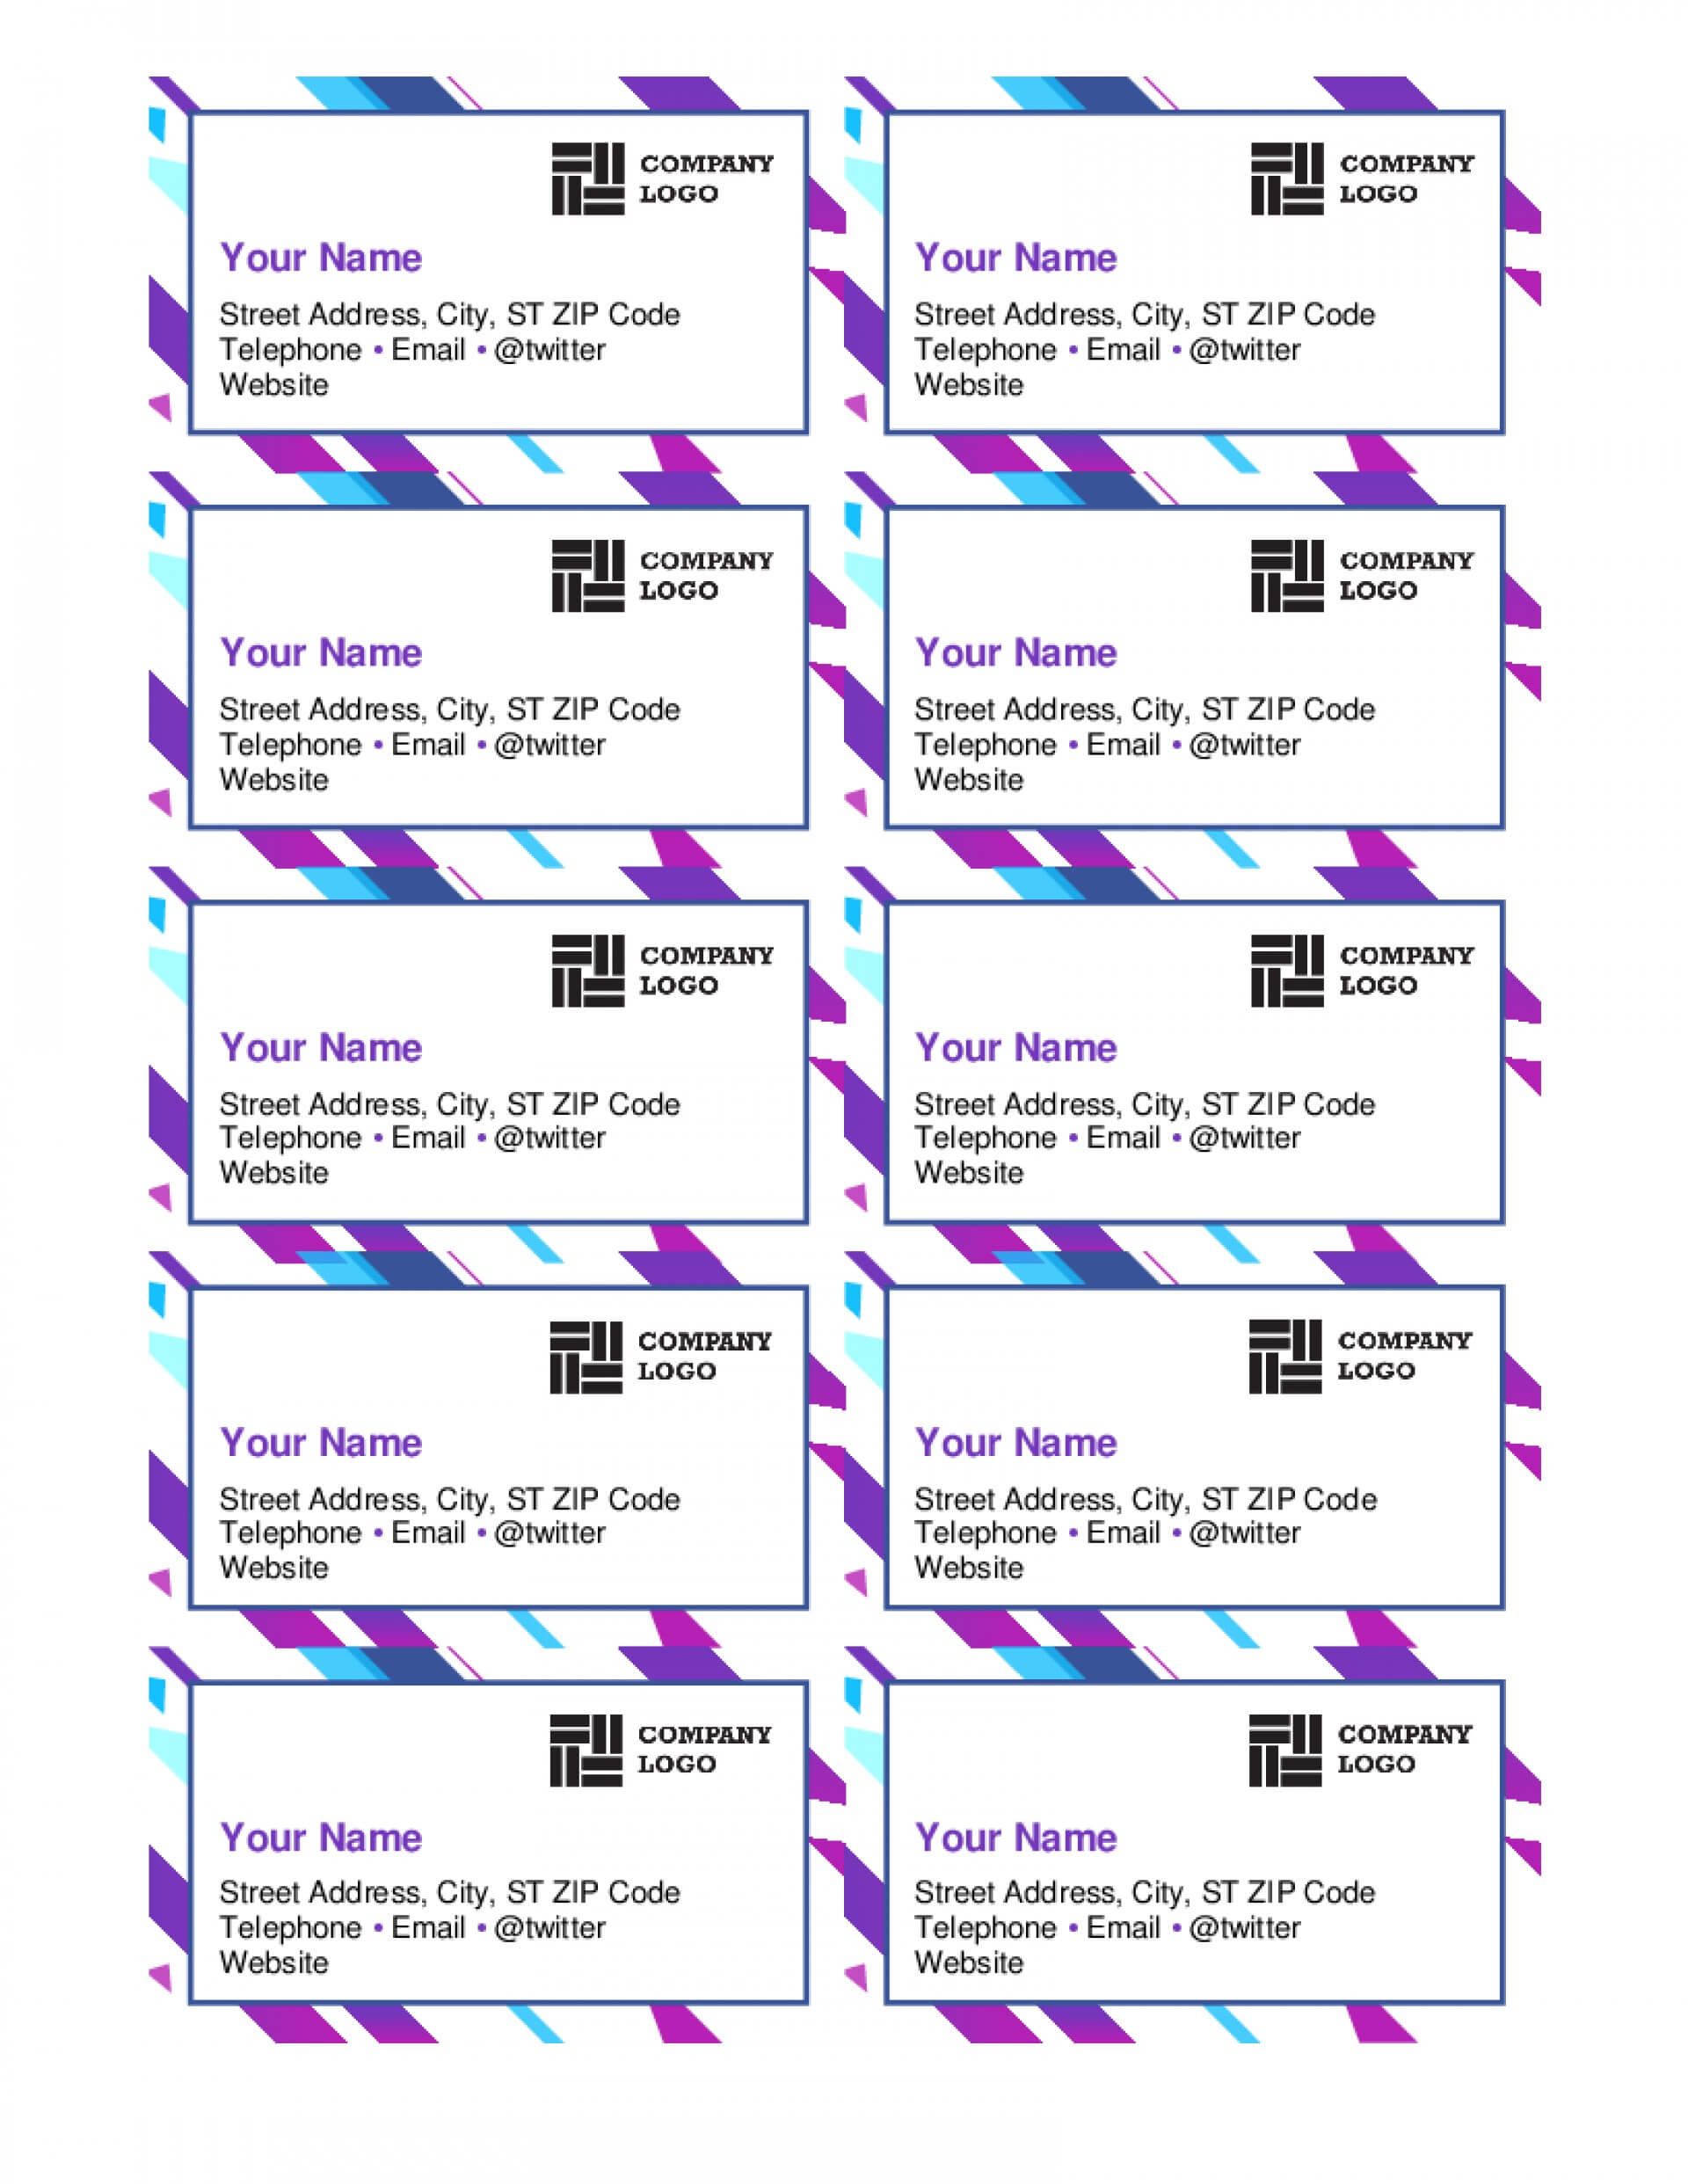 001 Template Ideas Image Microsoft Word Business Card For Template For Cards In Word